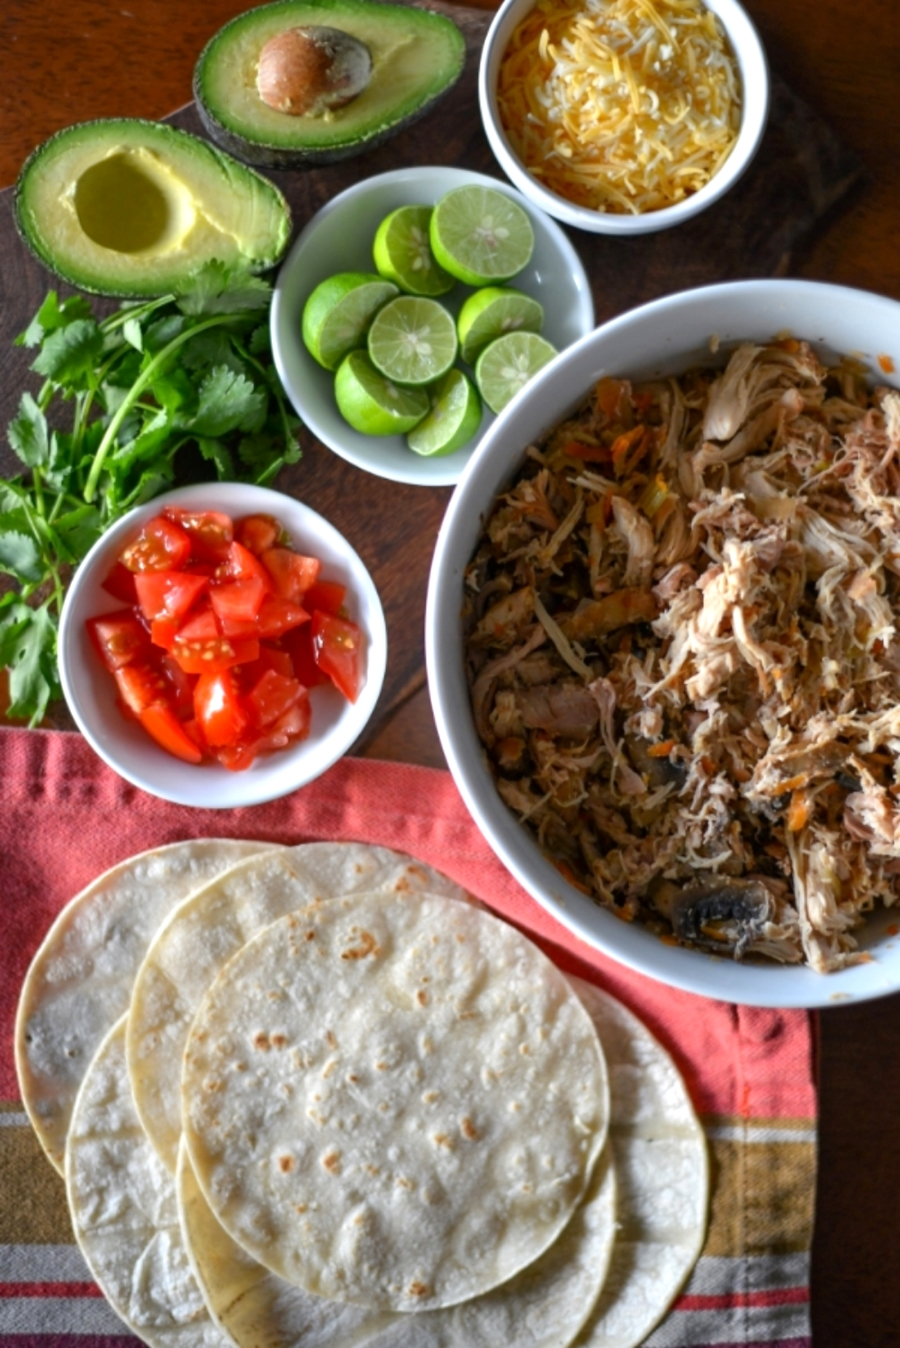 Shredded chicken taco ingredients